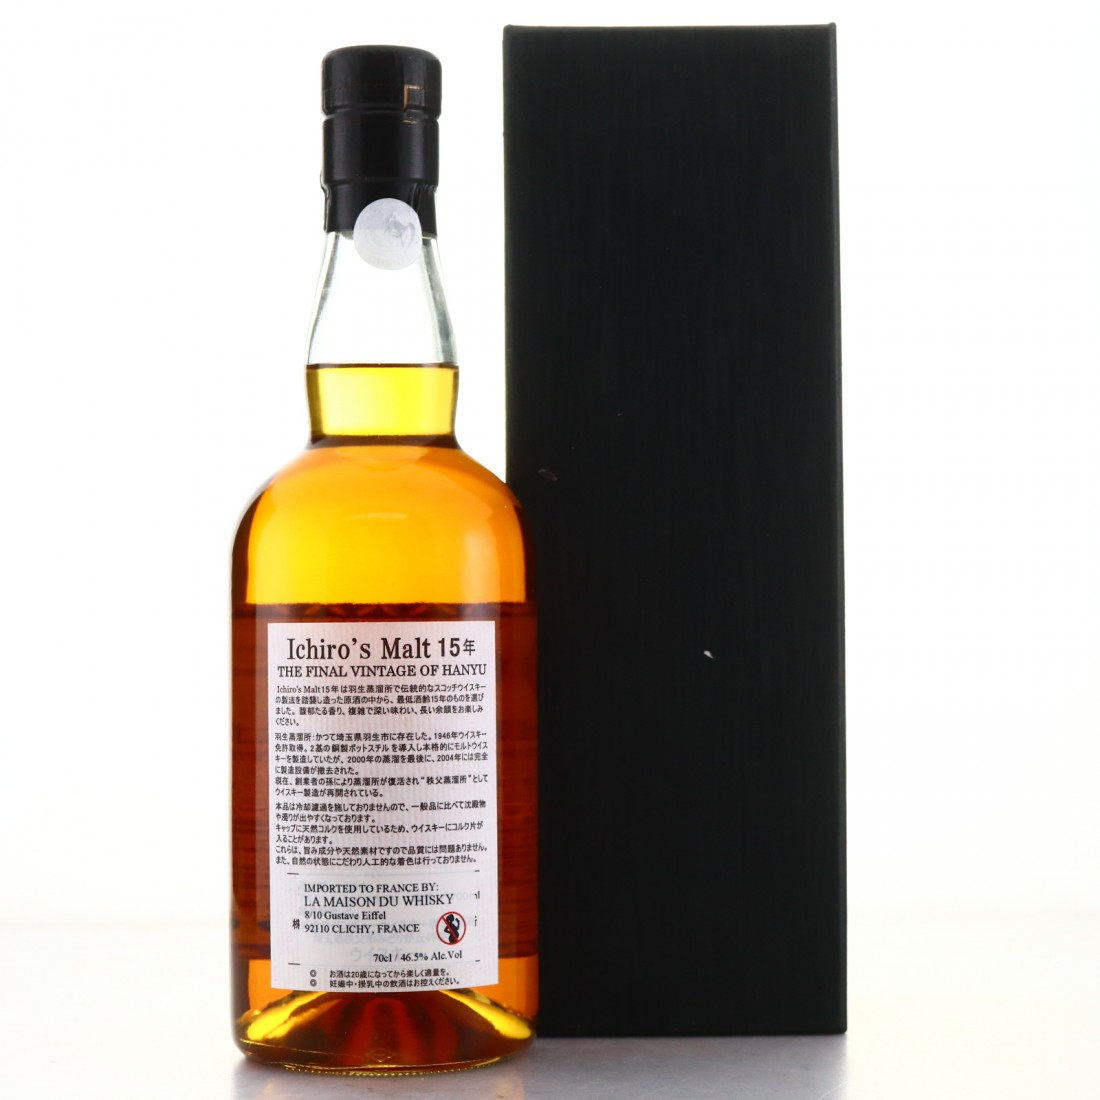 Hanyu 2000 Ichiro's Malt 15 Year Old / The Final Vintage